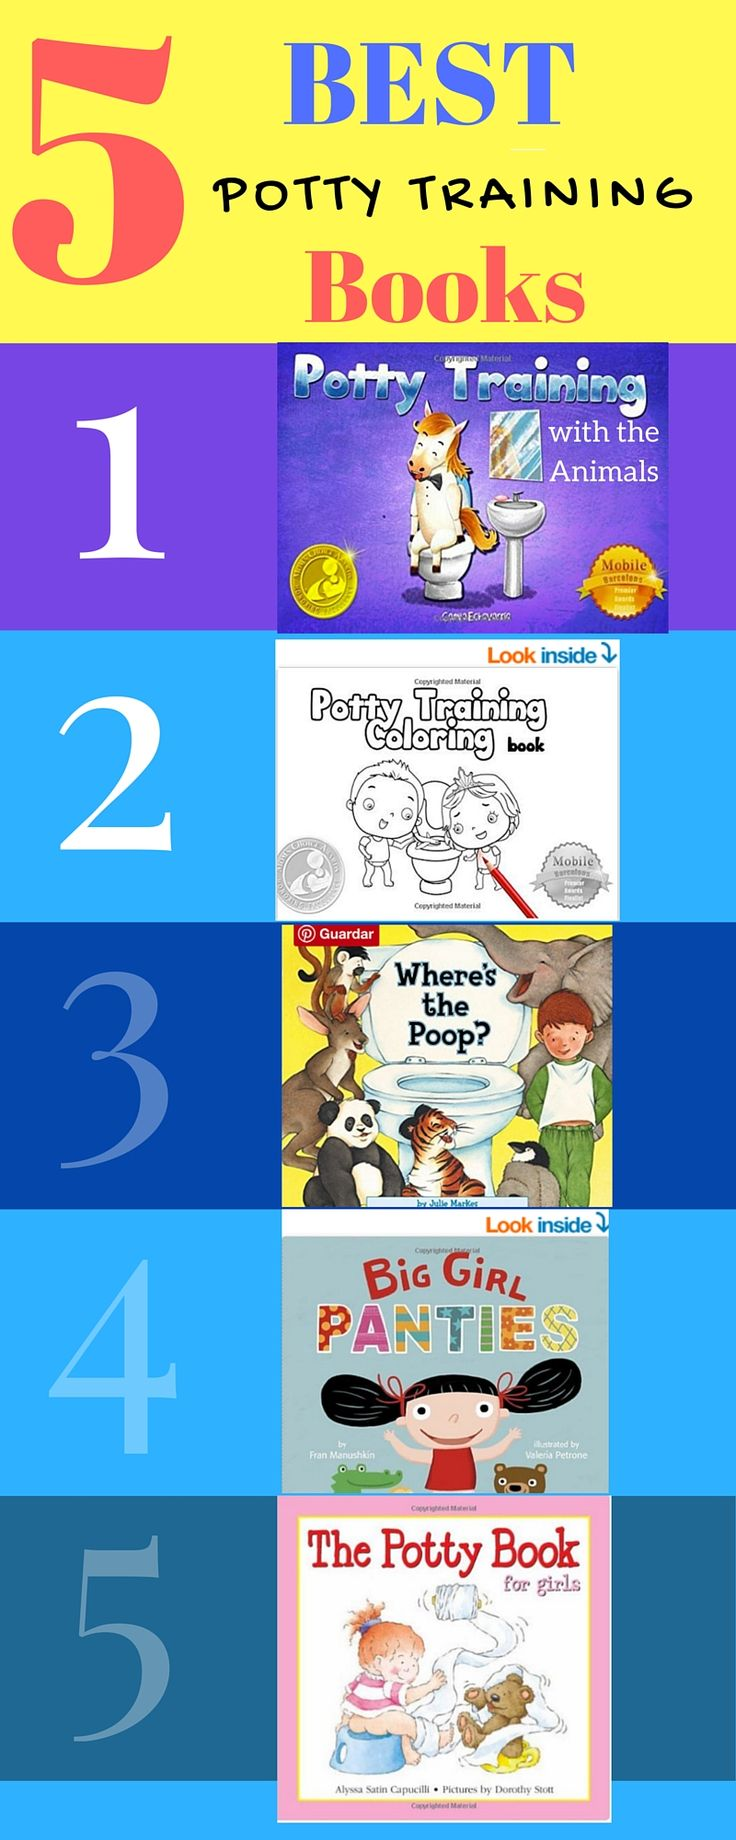 Top  Potty Training Books Those Of You Who Arent Currently Potty Training A Child Might Not Look Upon This List With The Same Glee As The Parents Of A